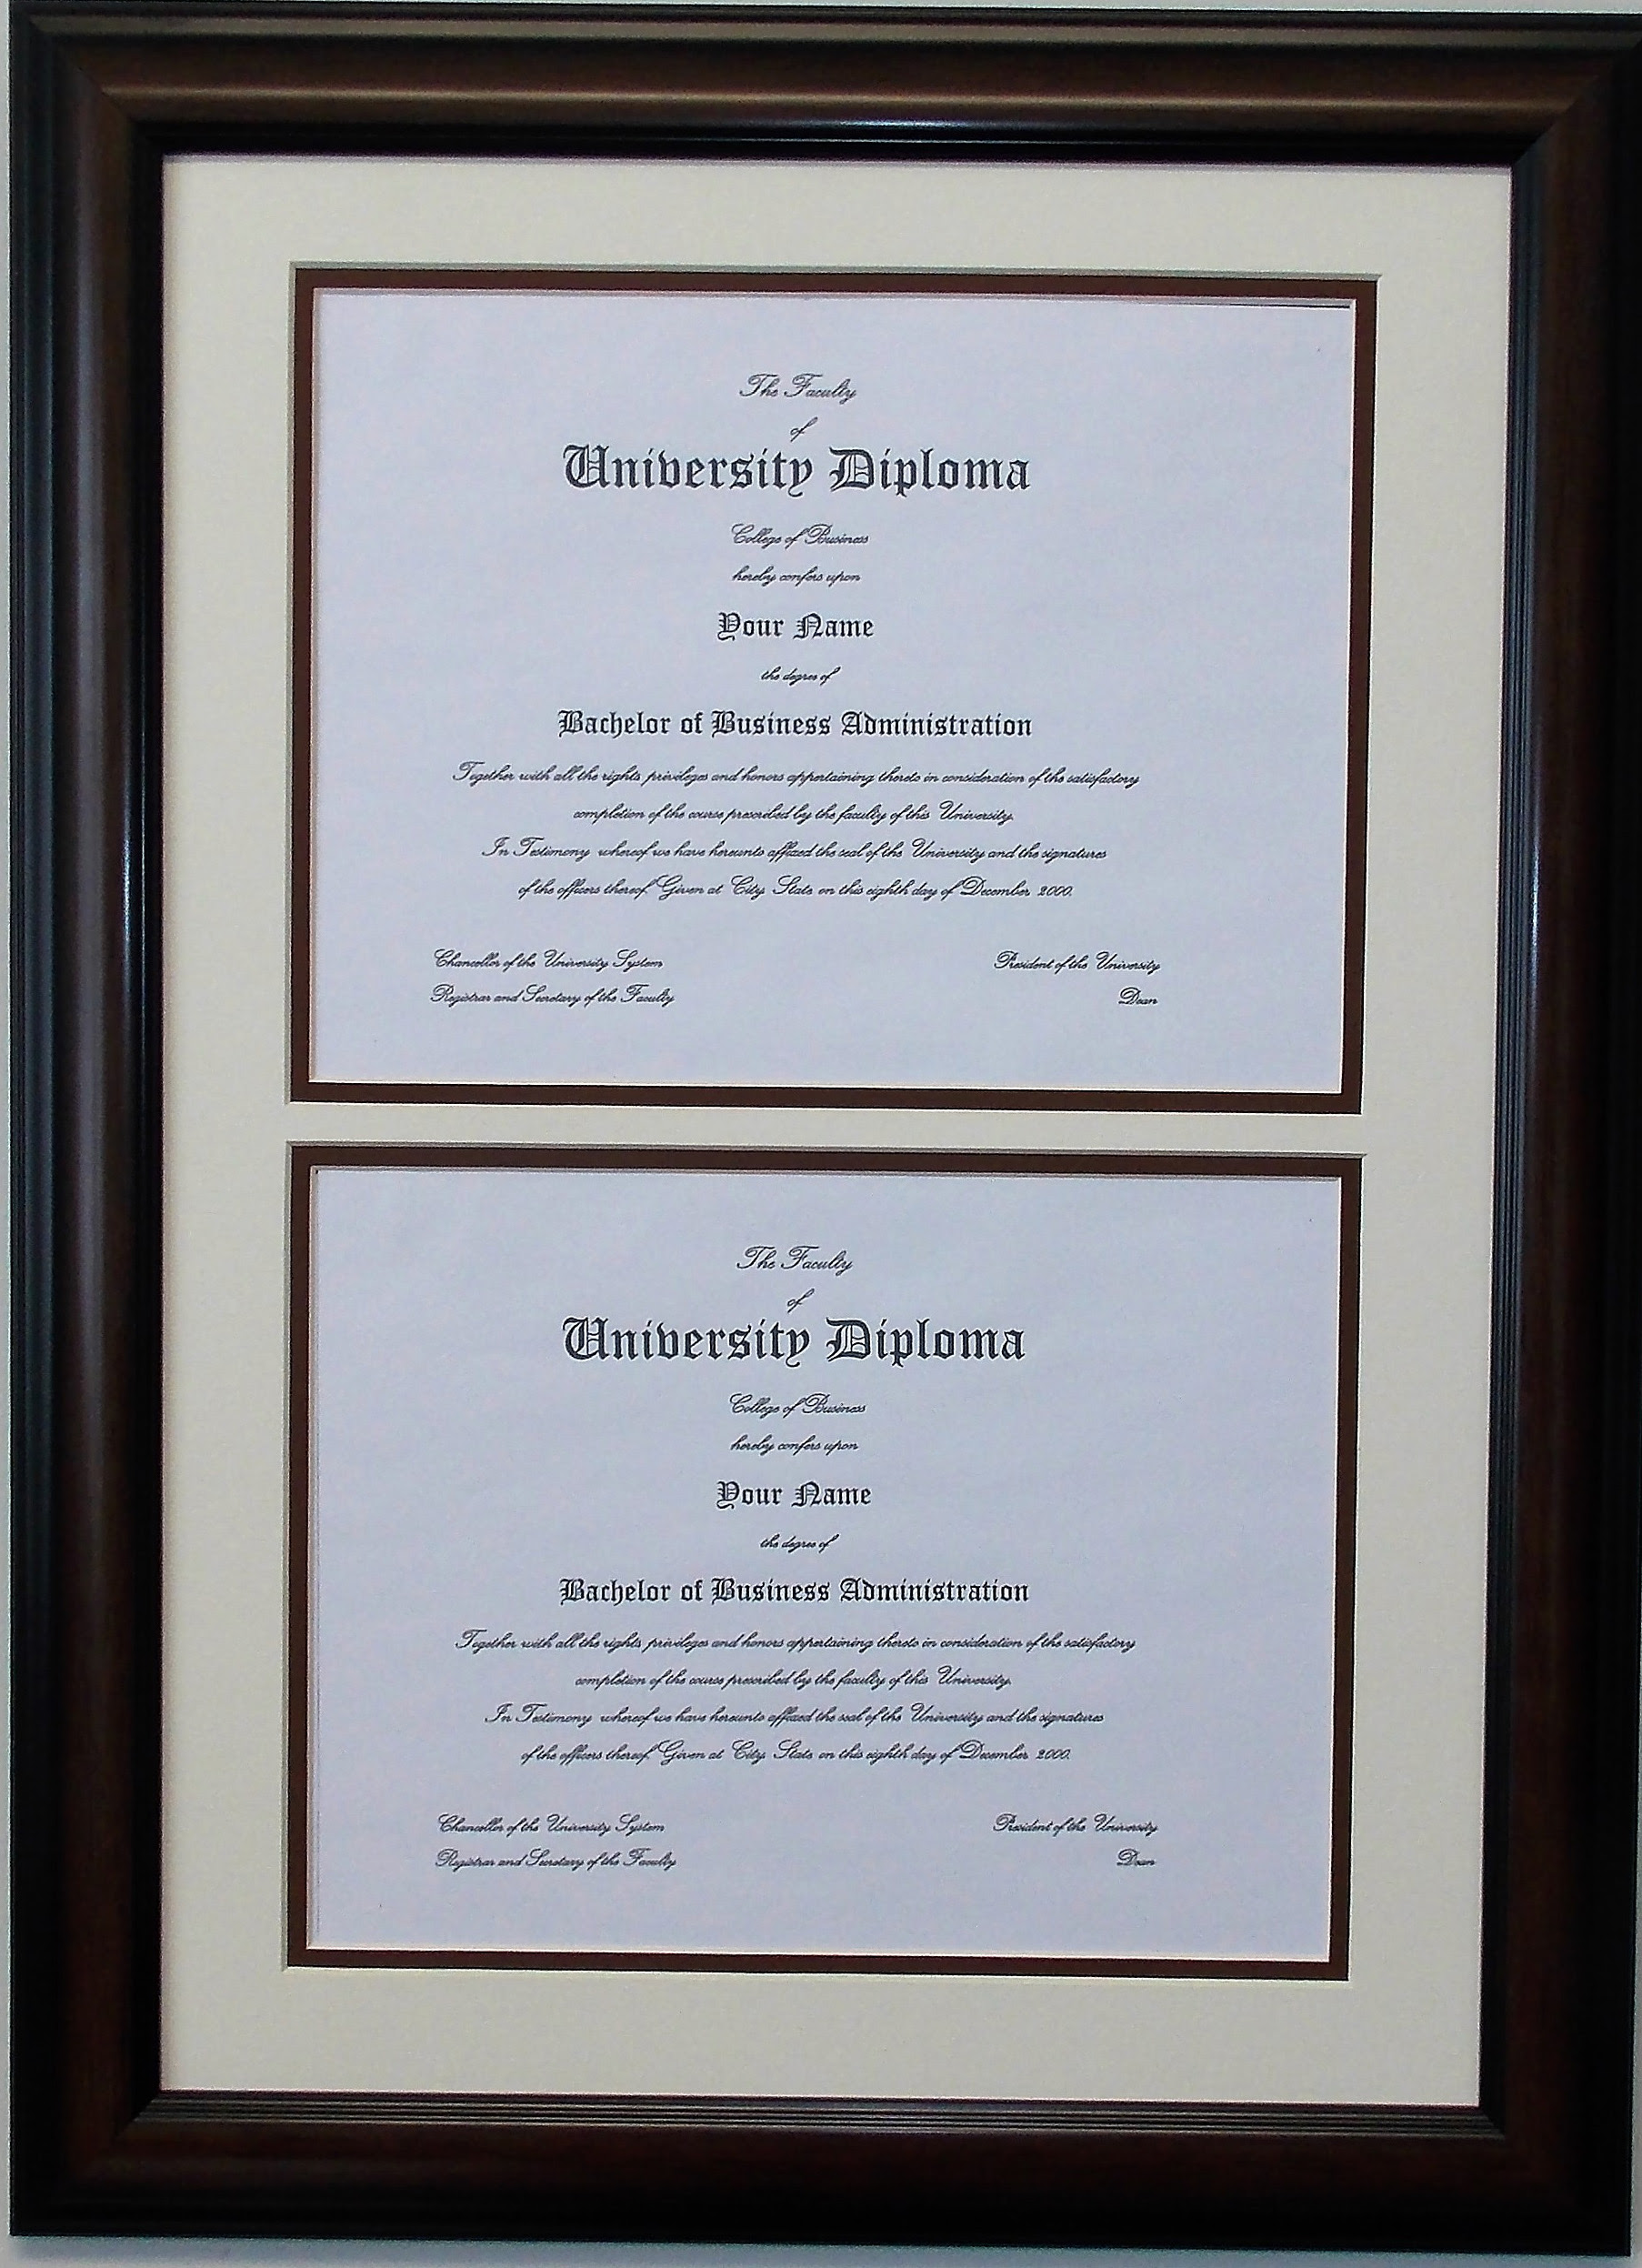 Double Diploma Document Certificate Openings Wood Picture Frame For